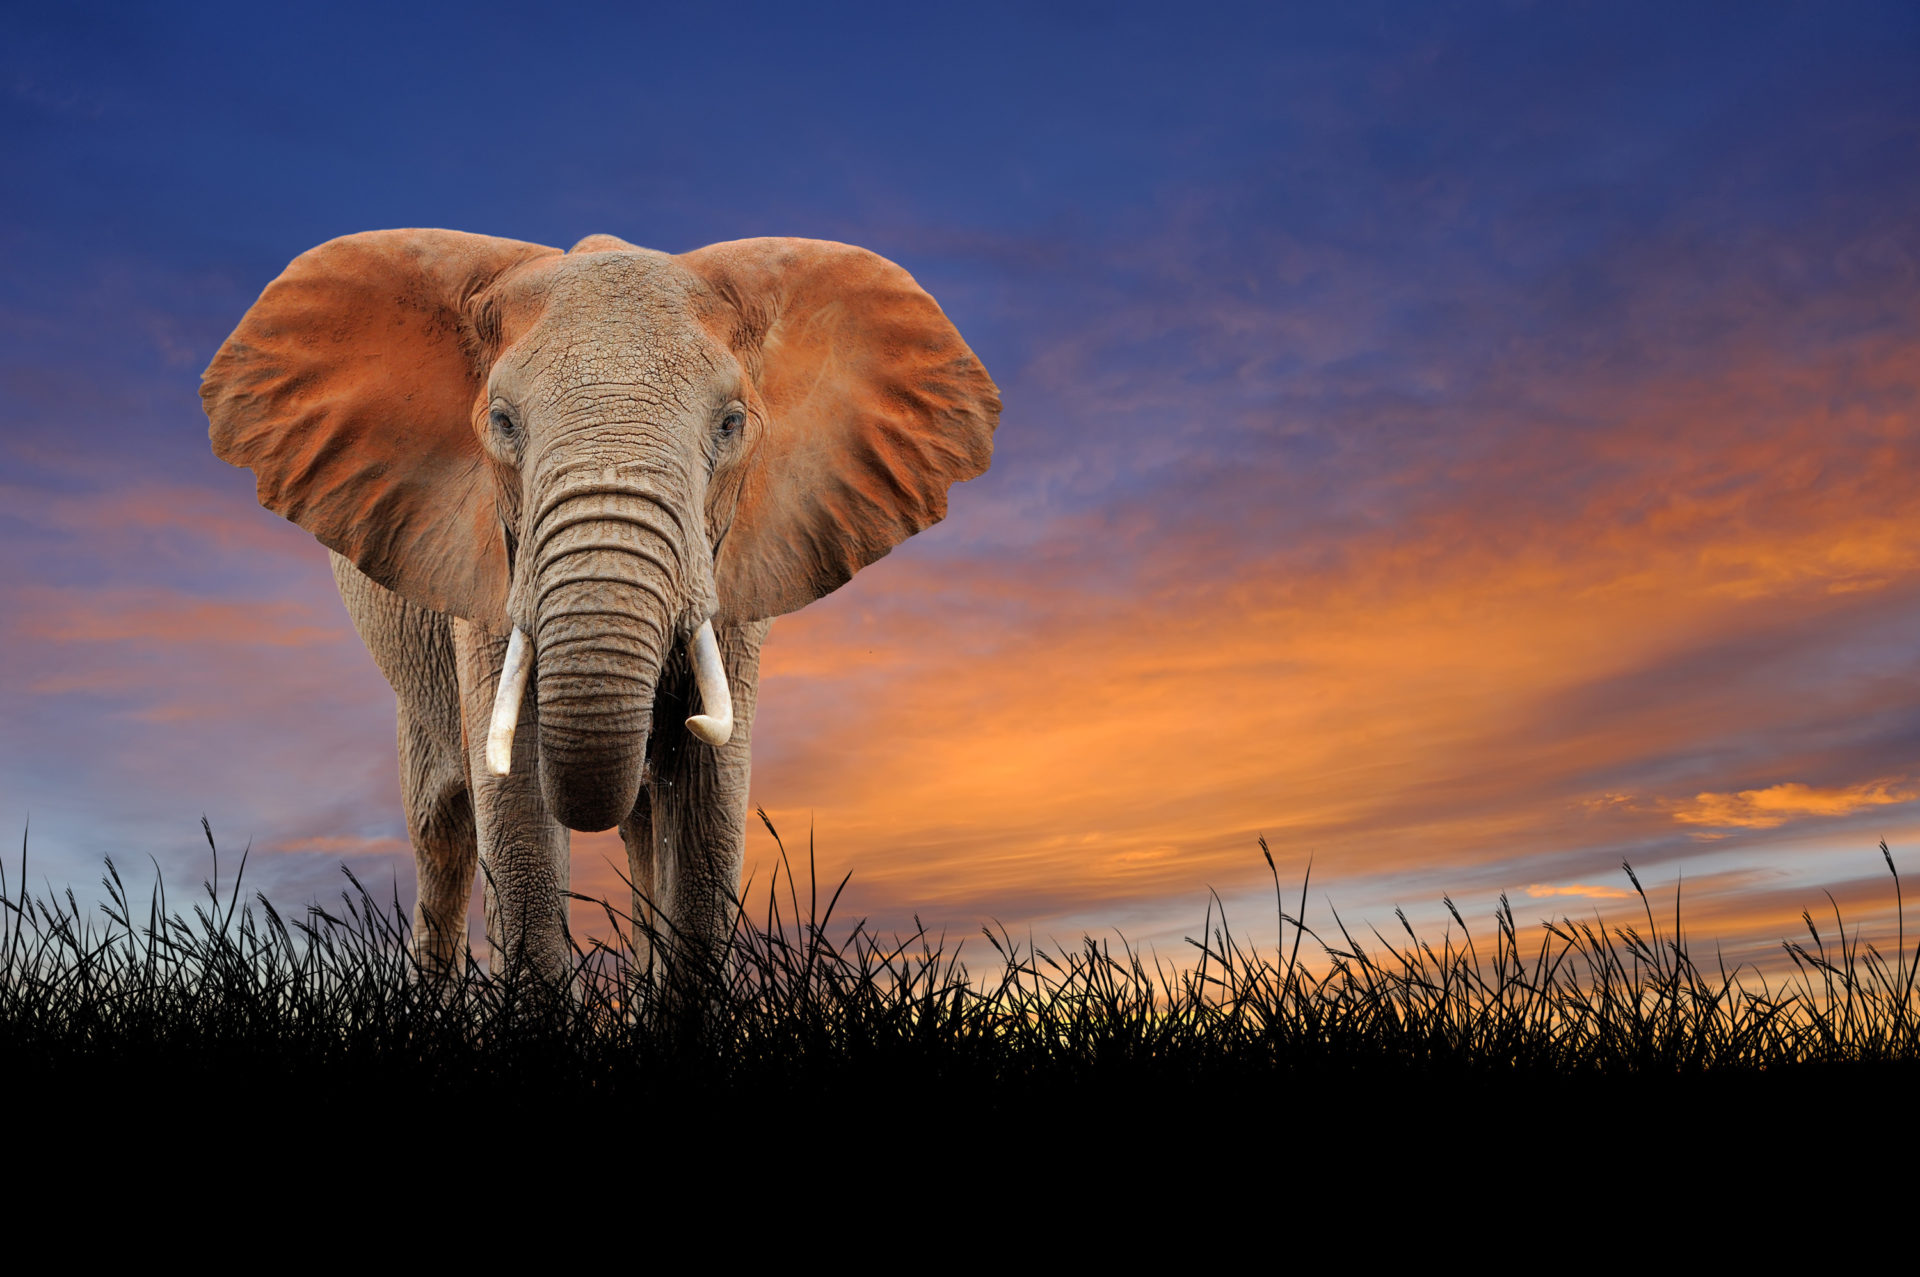 Elephant against on the background of sunset sky